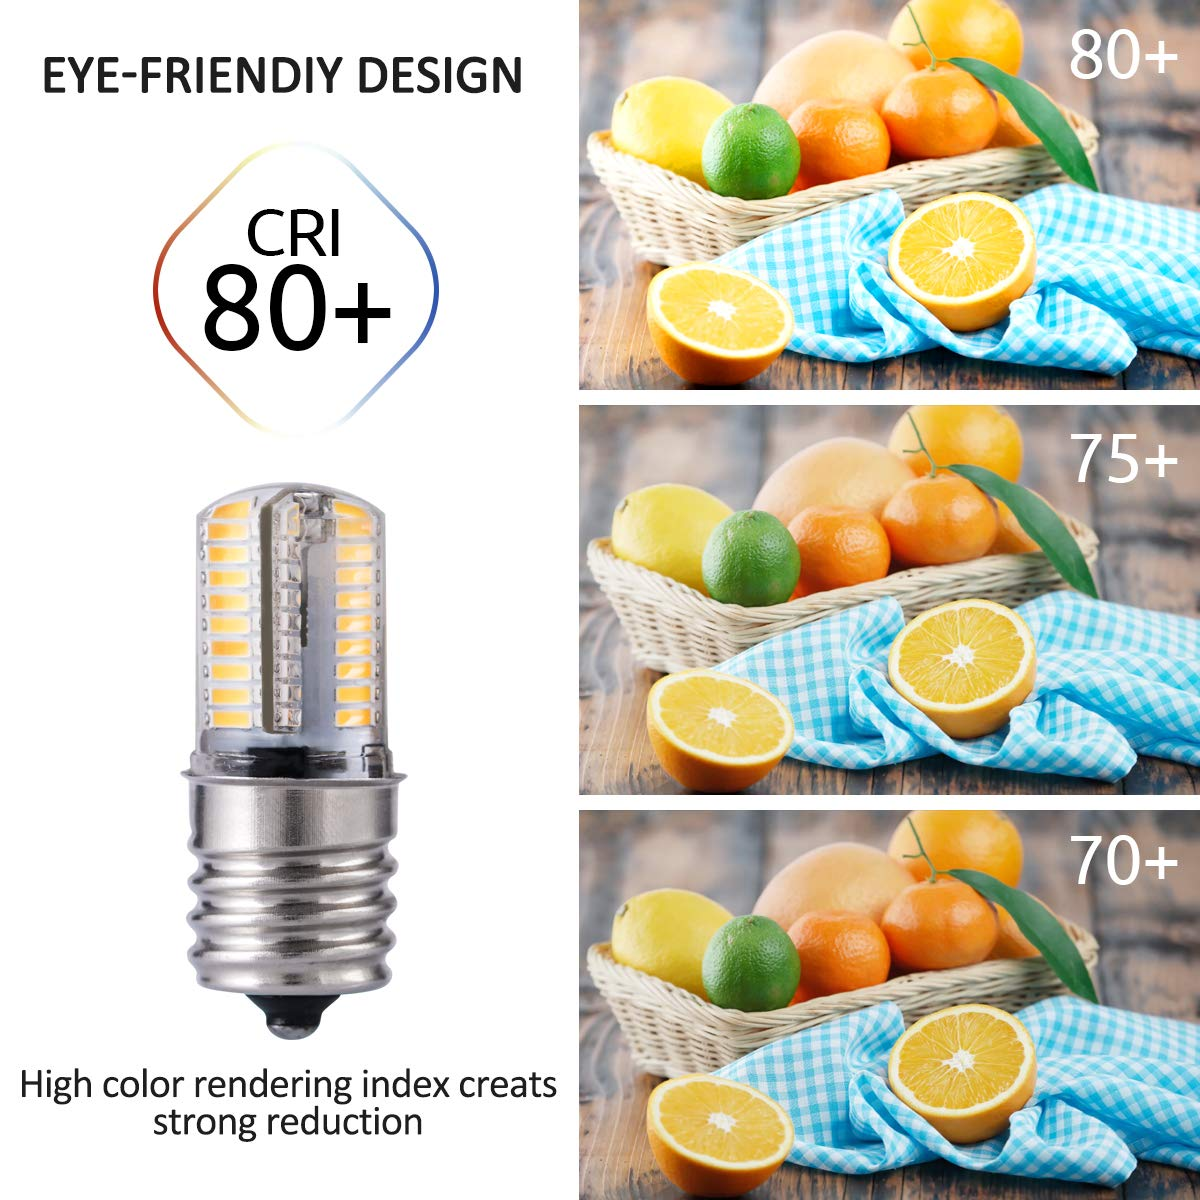 30W Halogen Bulbs 2 Pack 260LM Warm White Light 3000K Over Counter Ceiling Fan LED Bulbs GAWAR E17 Base LED Light Bulbs for Microwave Oven Appliance Dimmable 3W